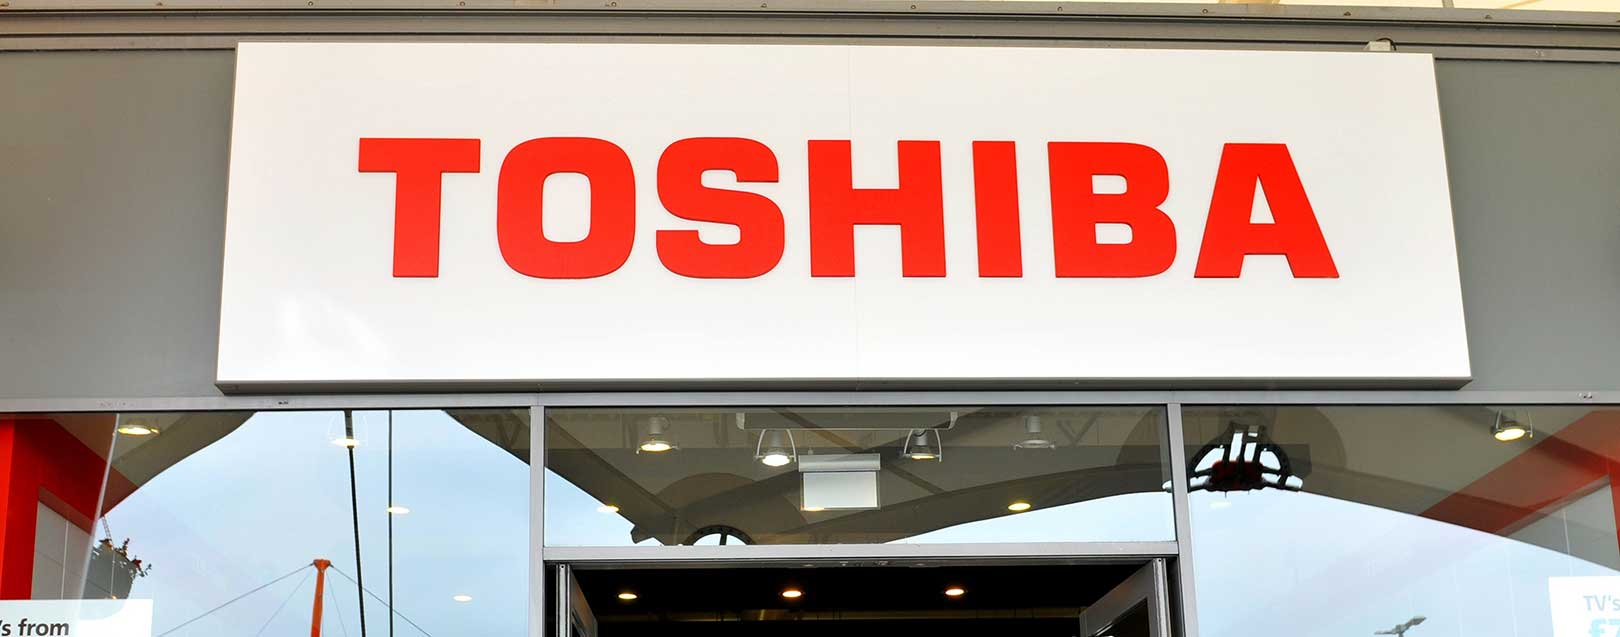 Toshiba to sell 'minority stake' in chip business to Western Digital